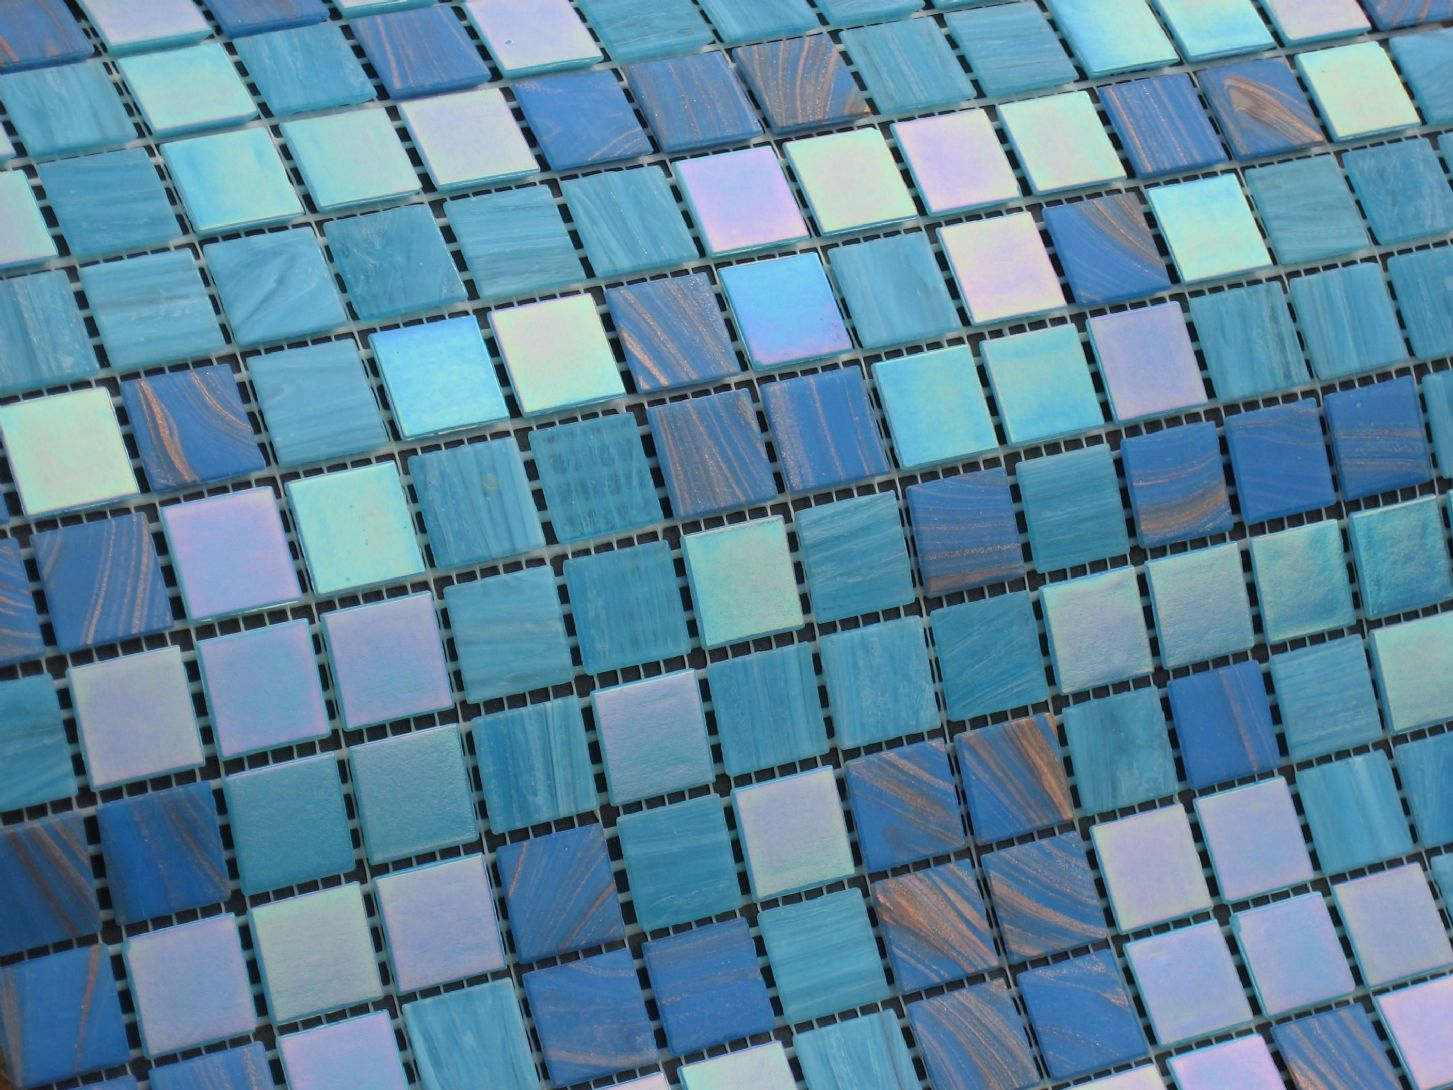 Pool Mosaic Tiles | Compass Pools